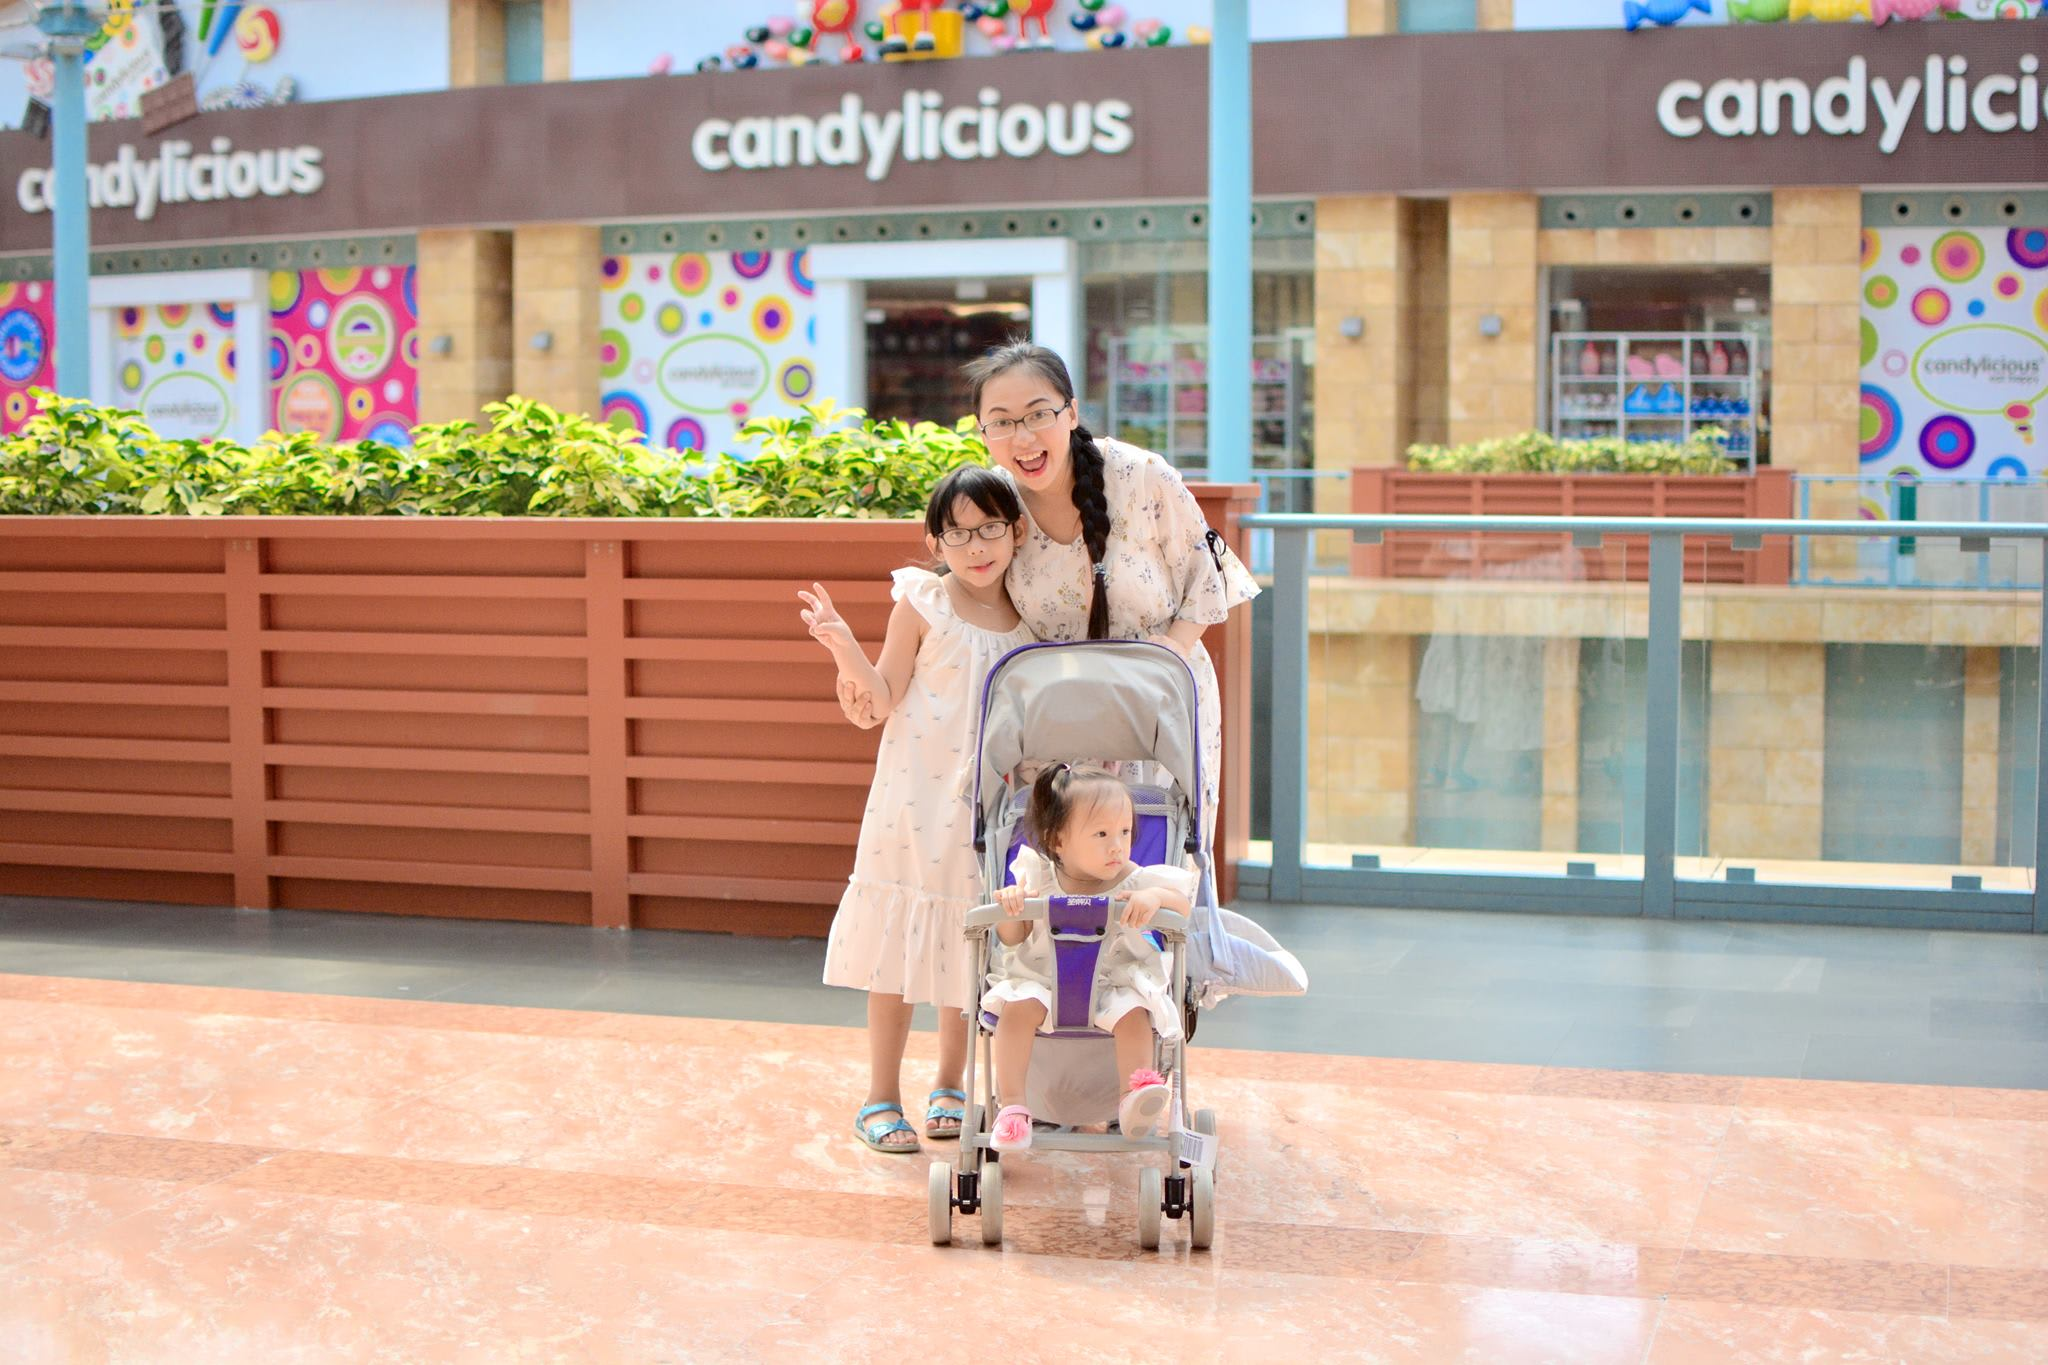 tại marina square shopping mall